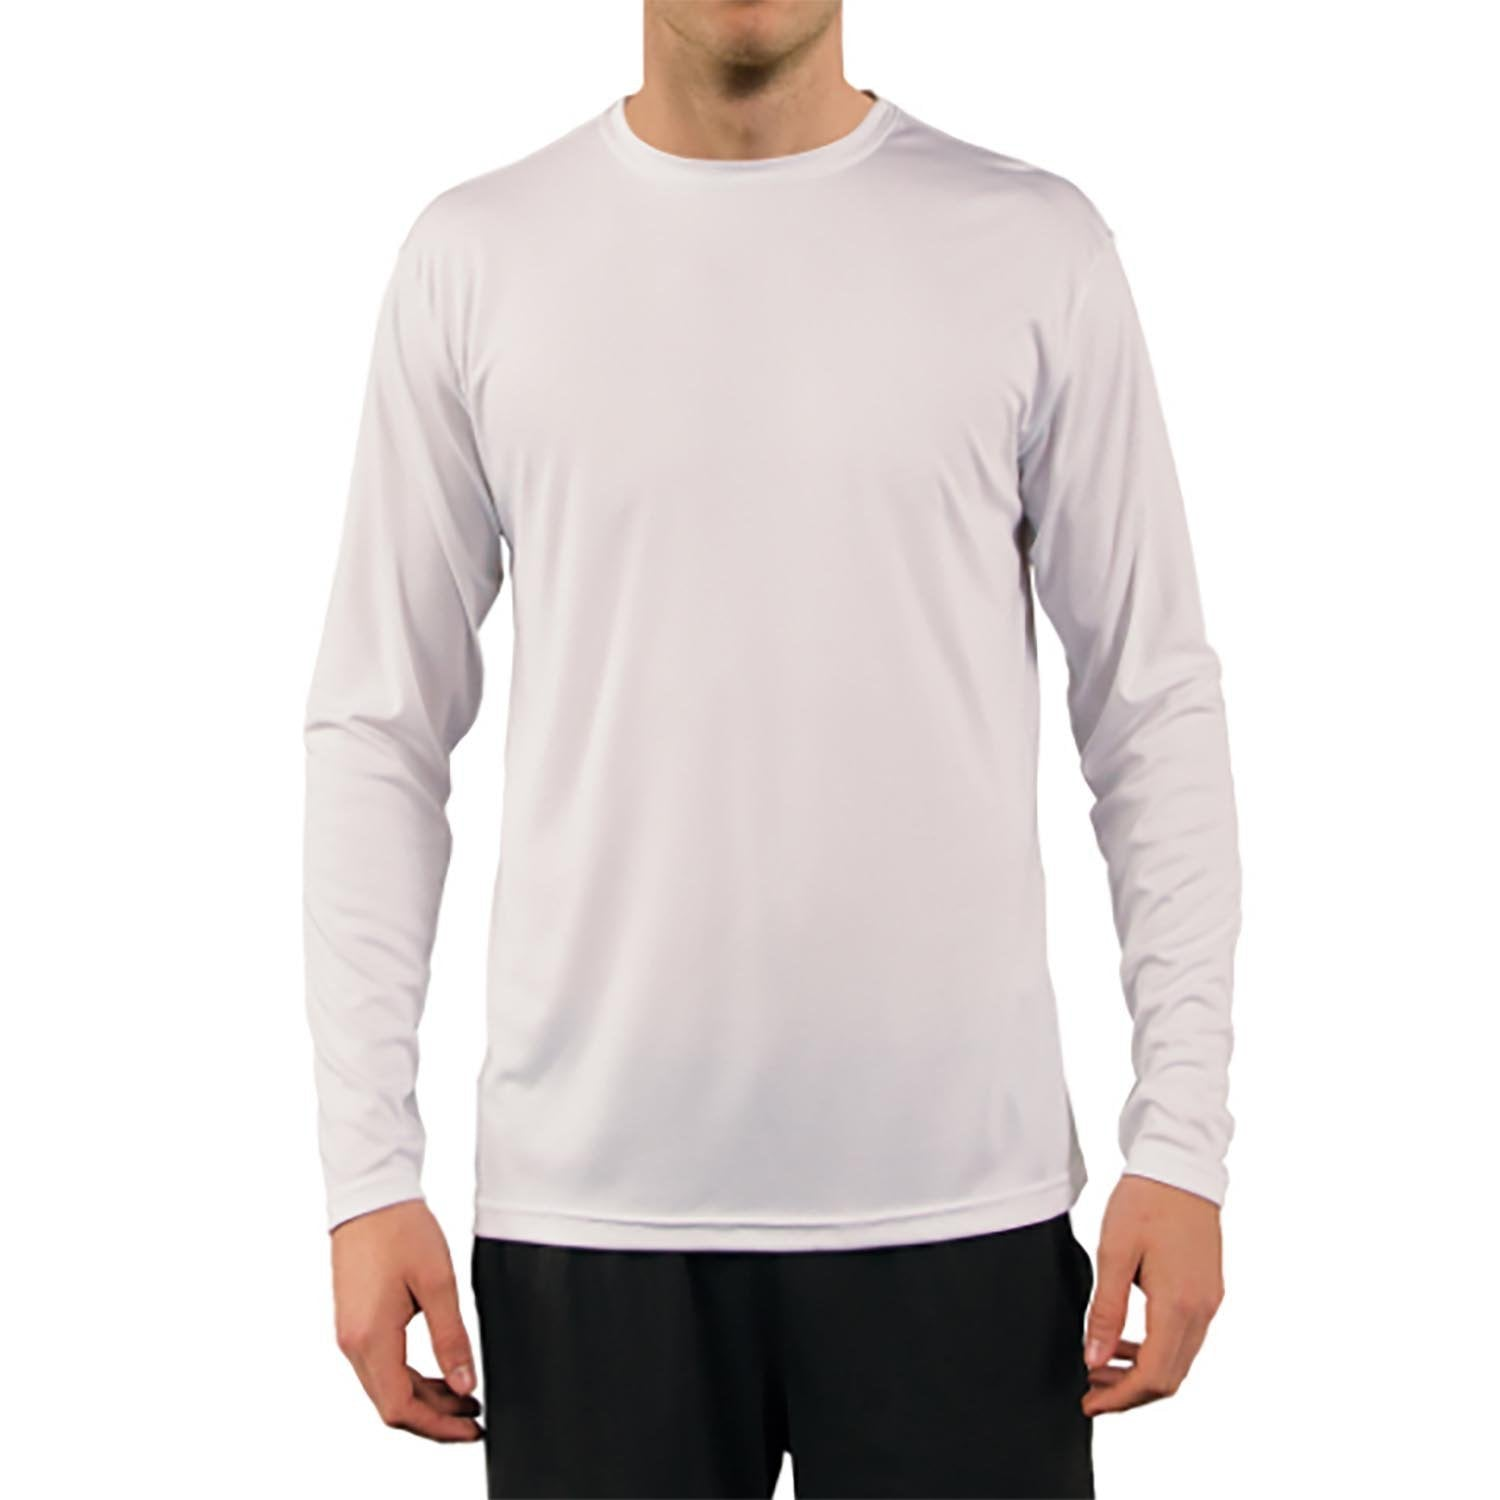 Mens Sailing Shirt Tech Performance White Long Sleeve 7221f80a69b